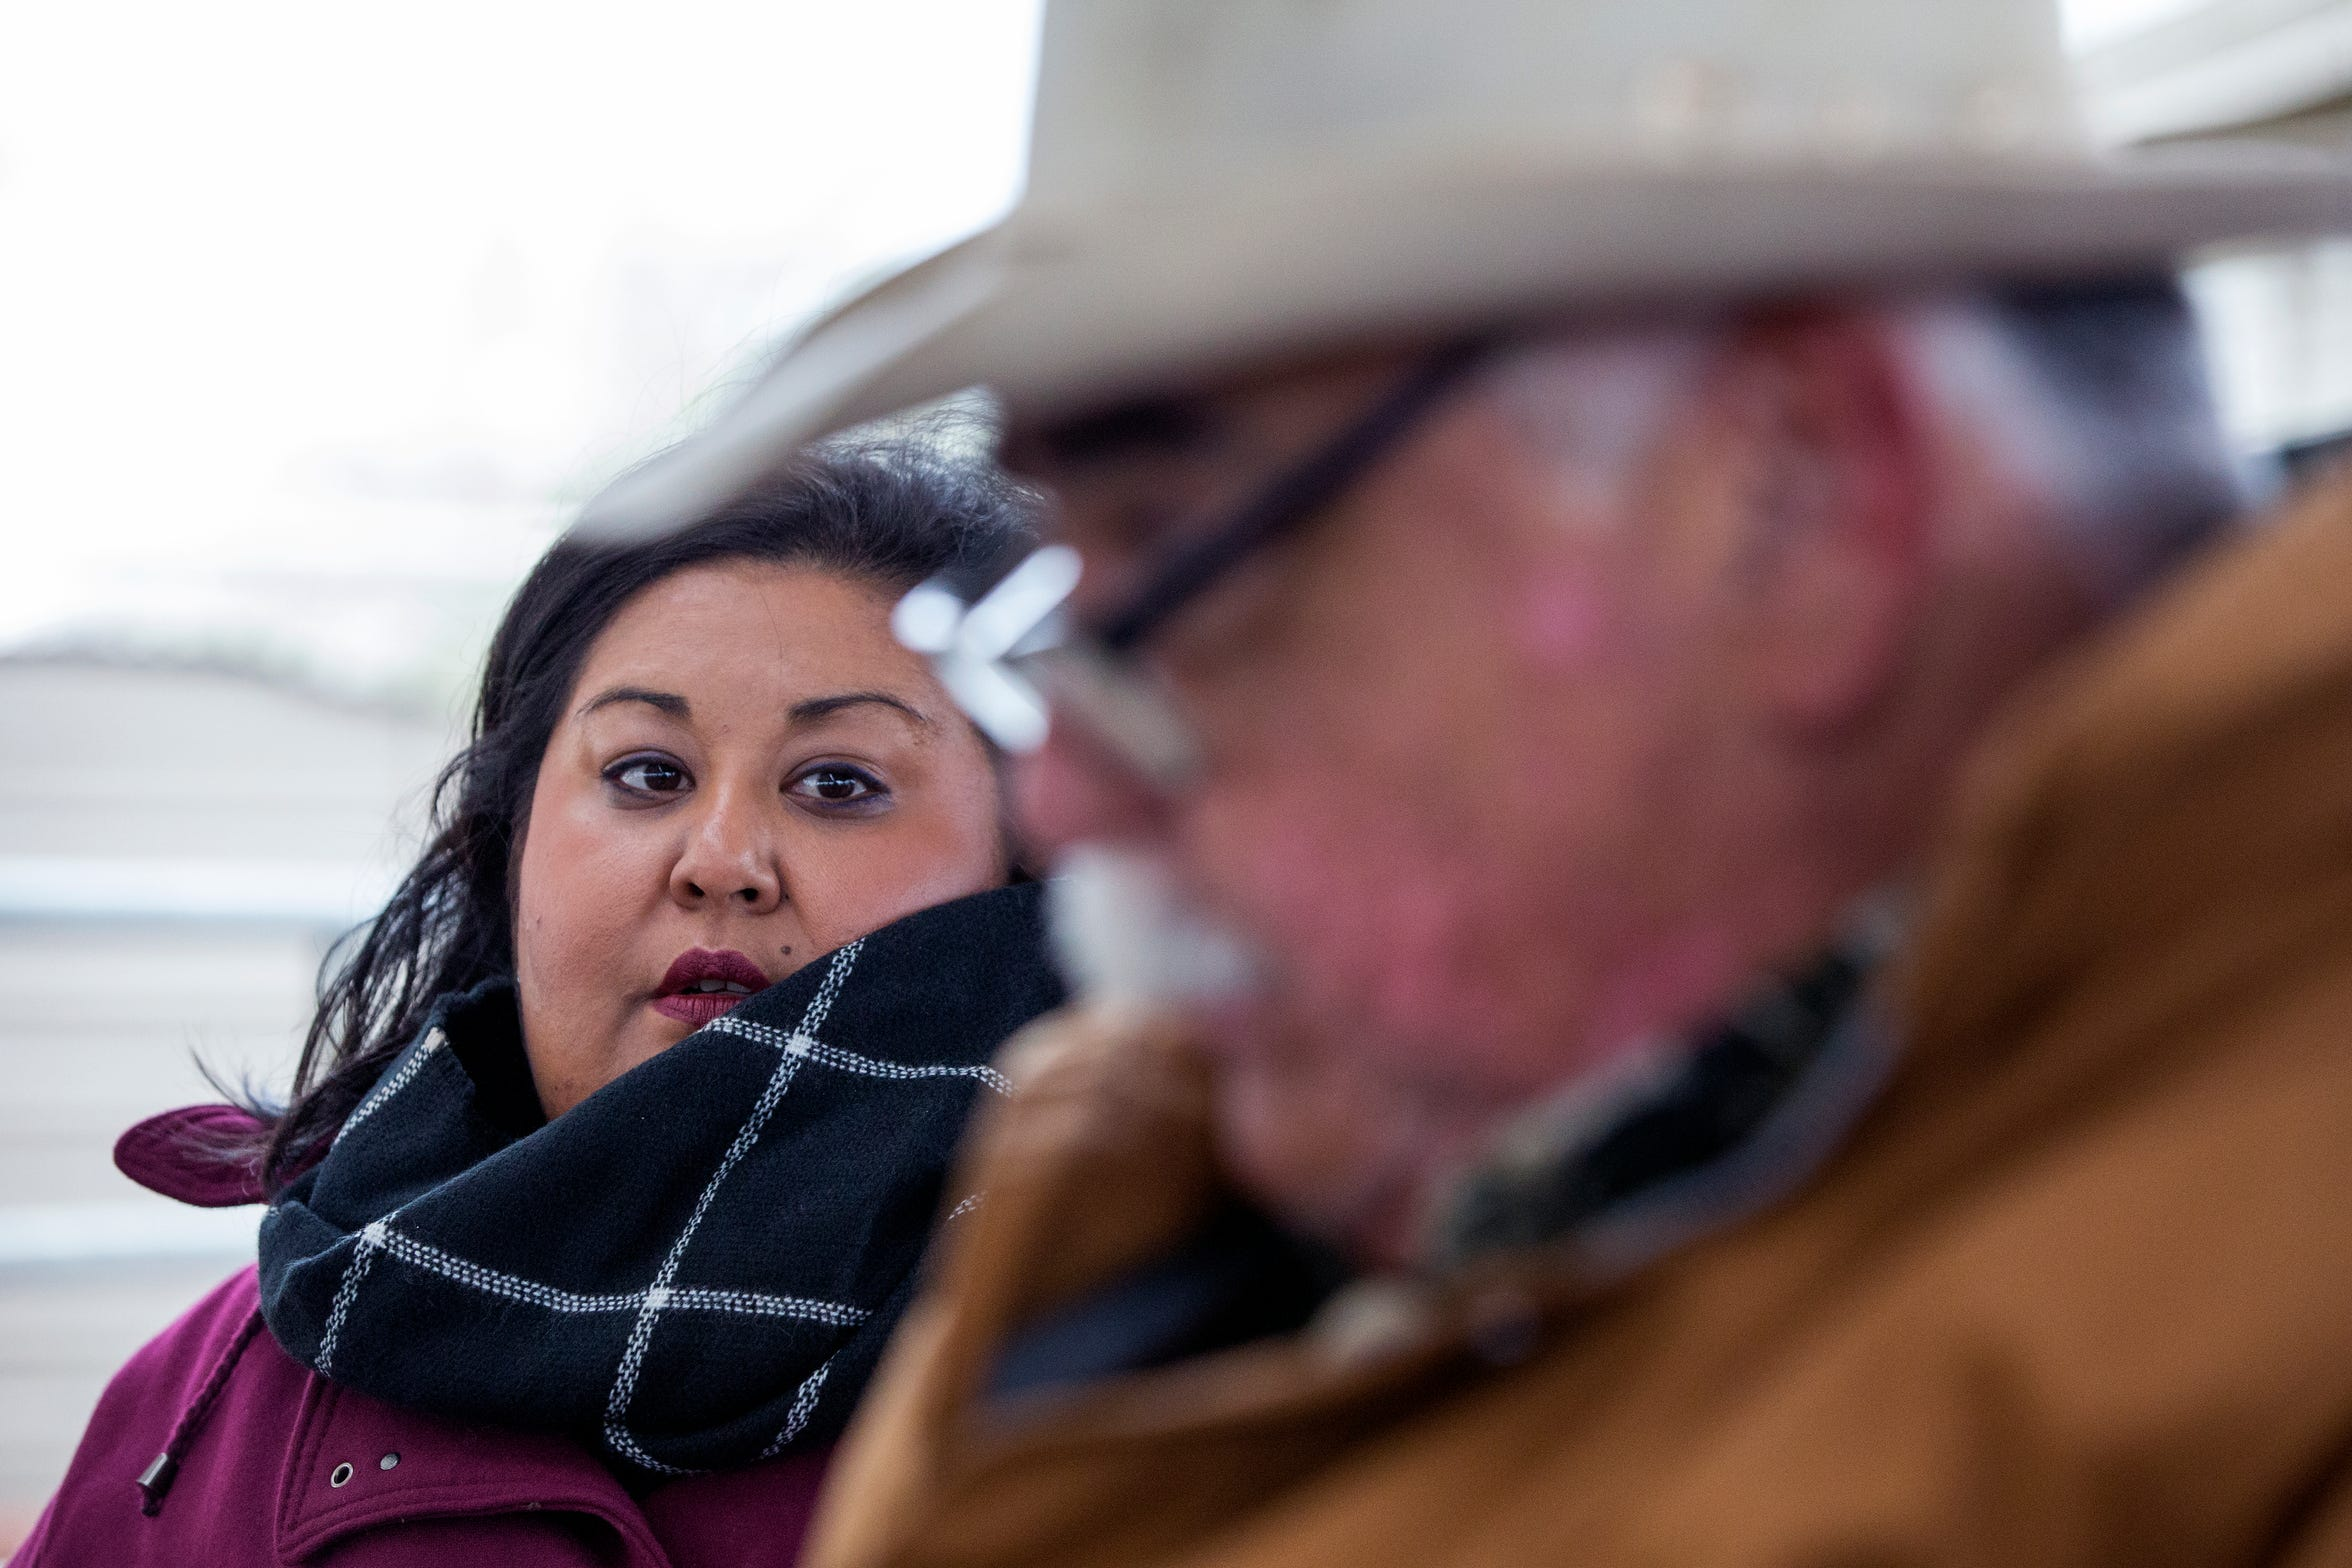 Della Serna (left) and her father, Felix Serna, sort cattle to be sold at auction at the El Coyote Ranch on Tuesday, November 13, 2018. Della began following her father around the ranch when she was about five and began working at the ranch when she was 12. Now, Della plays a major role in the ranch's large cattle and pure-bred operations, maintainingÊrecords, dealing with genetics, keeping up with USDA regulations, managing proceduralÊschedules for livestock, halter breaking and showingÊanimals, whileÊmarketing the ranch's prized cattleÊto prospective buyers.